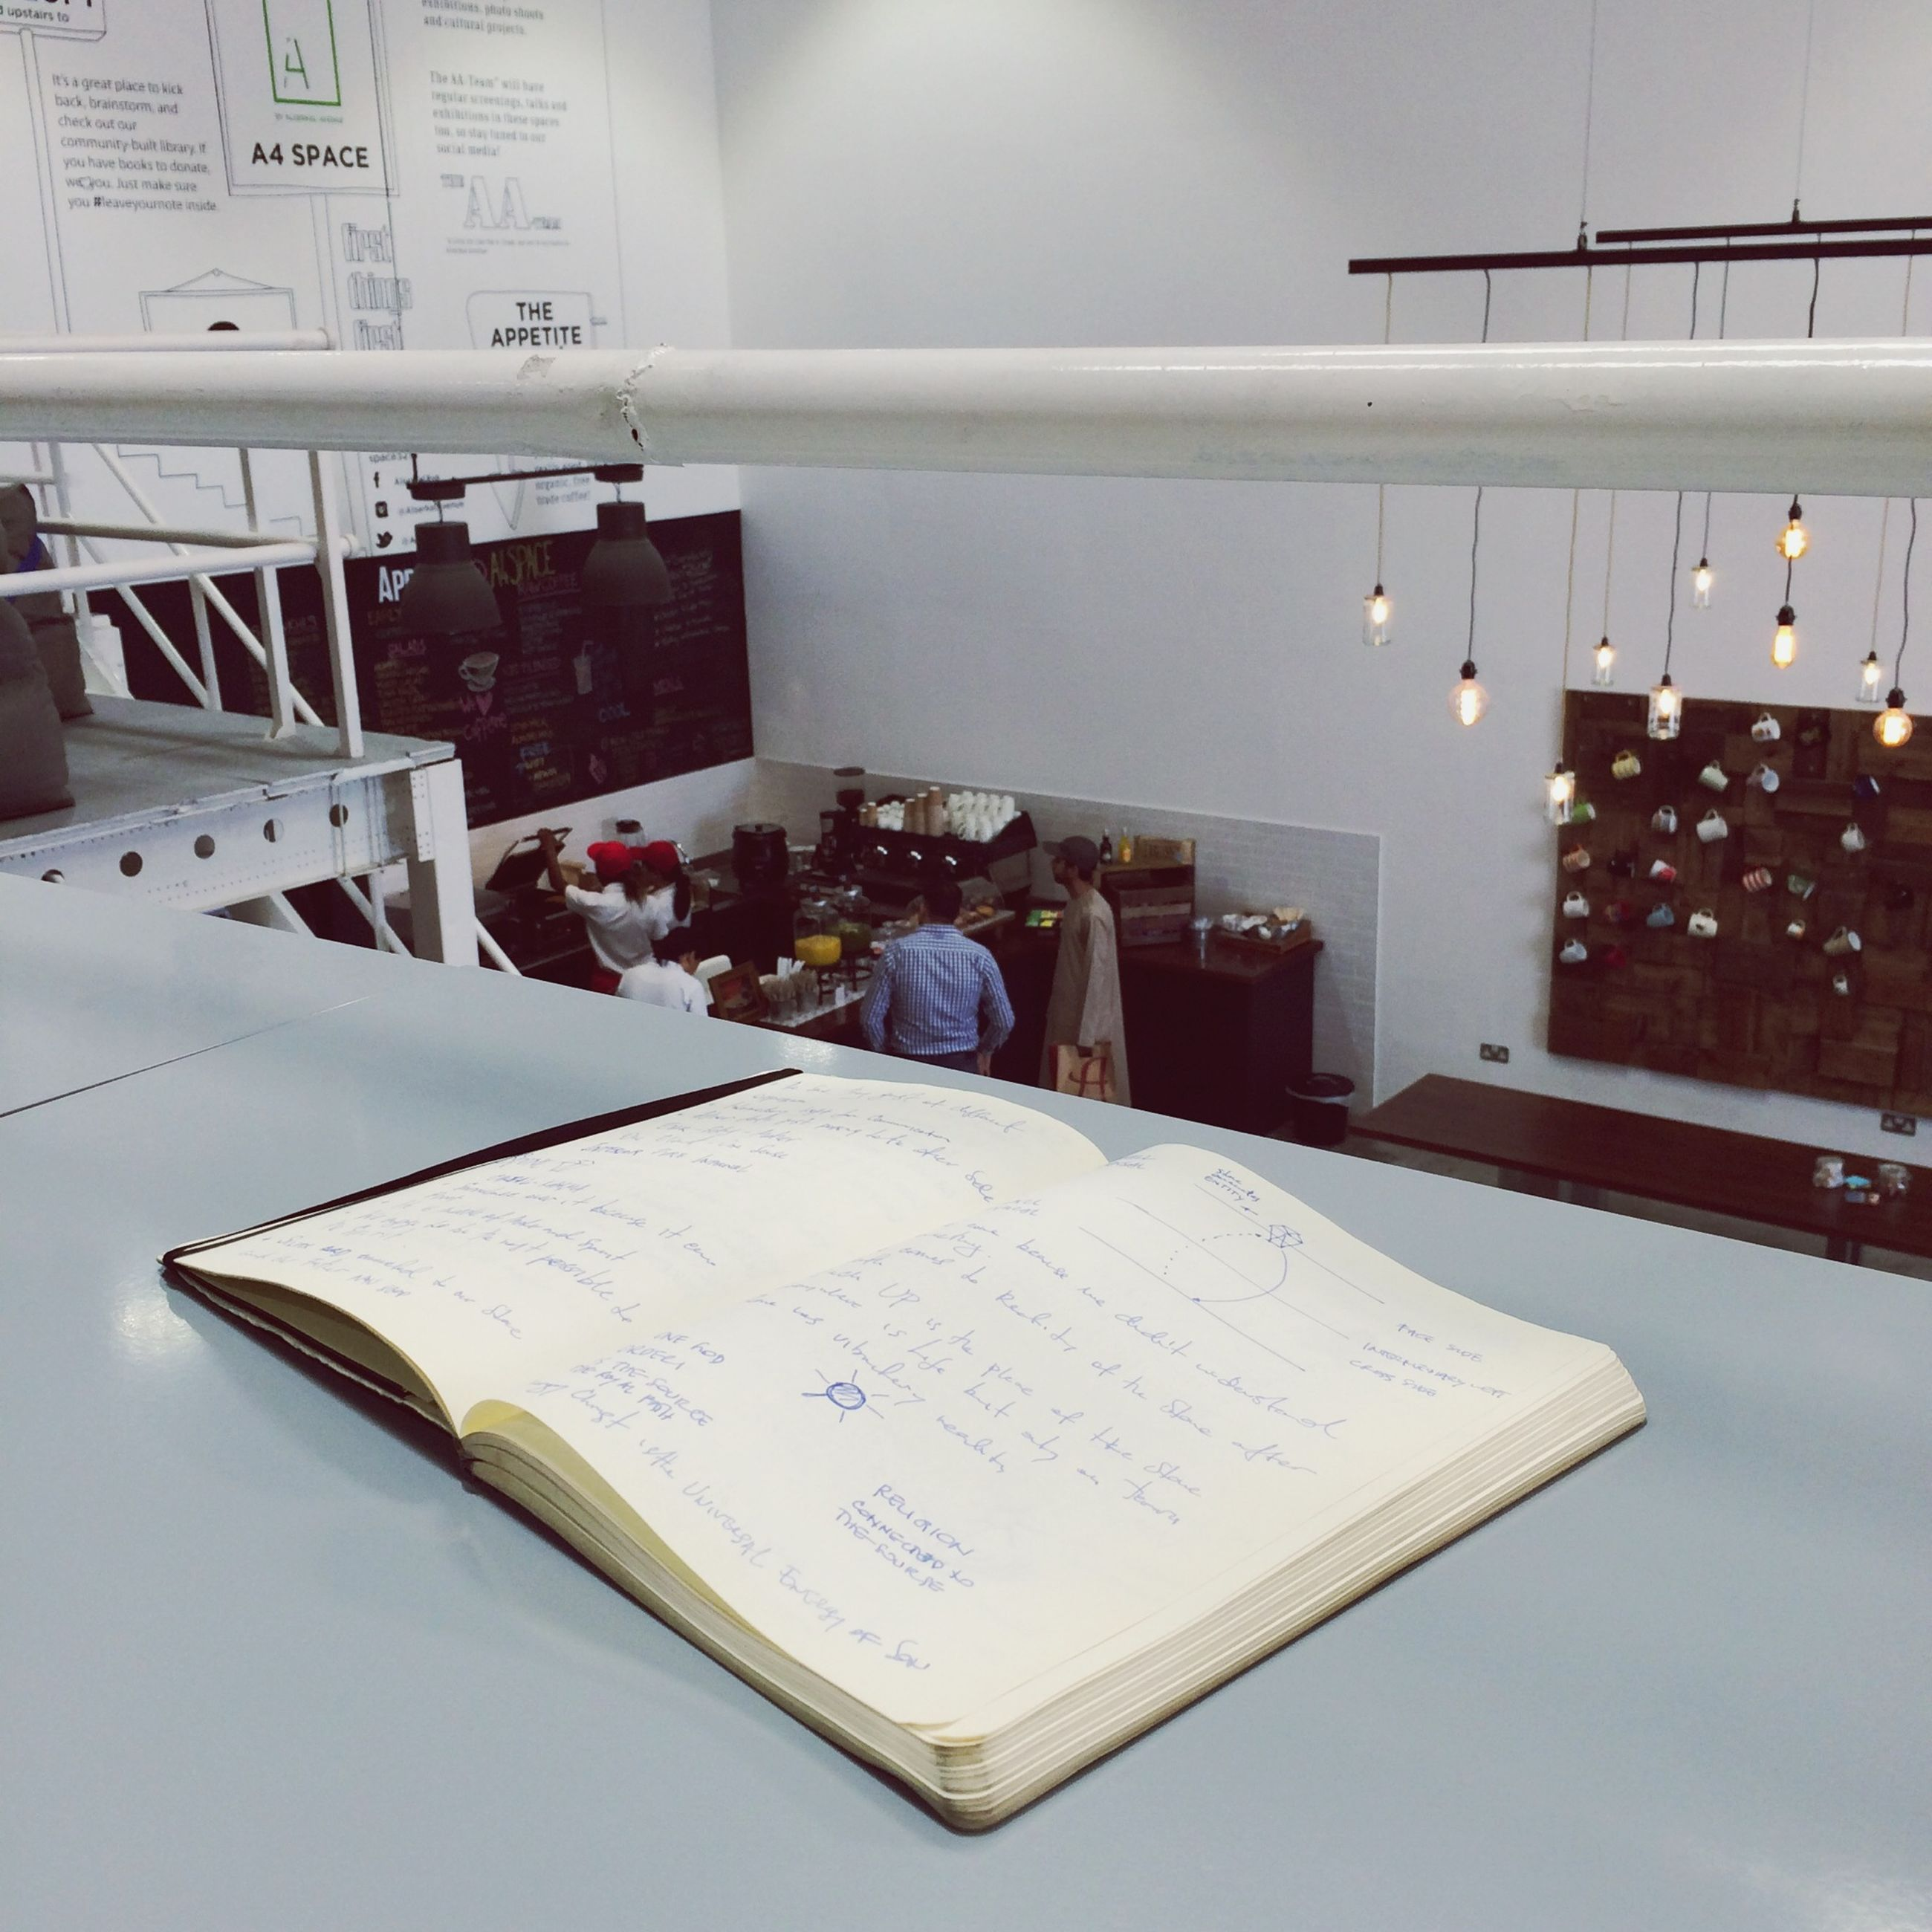 text, communication, western script, indoors, paper, book, education, non-western script, table, no people, message, still life, built structure, hanging, information, architecture, religion, white color, high angle view, day